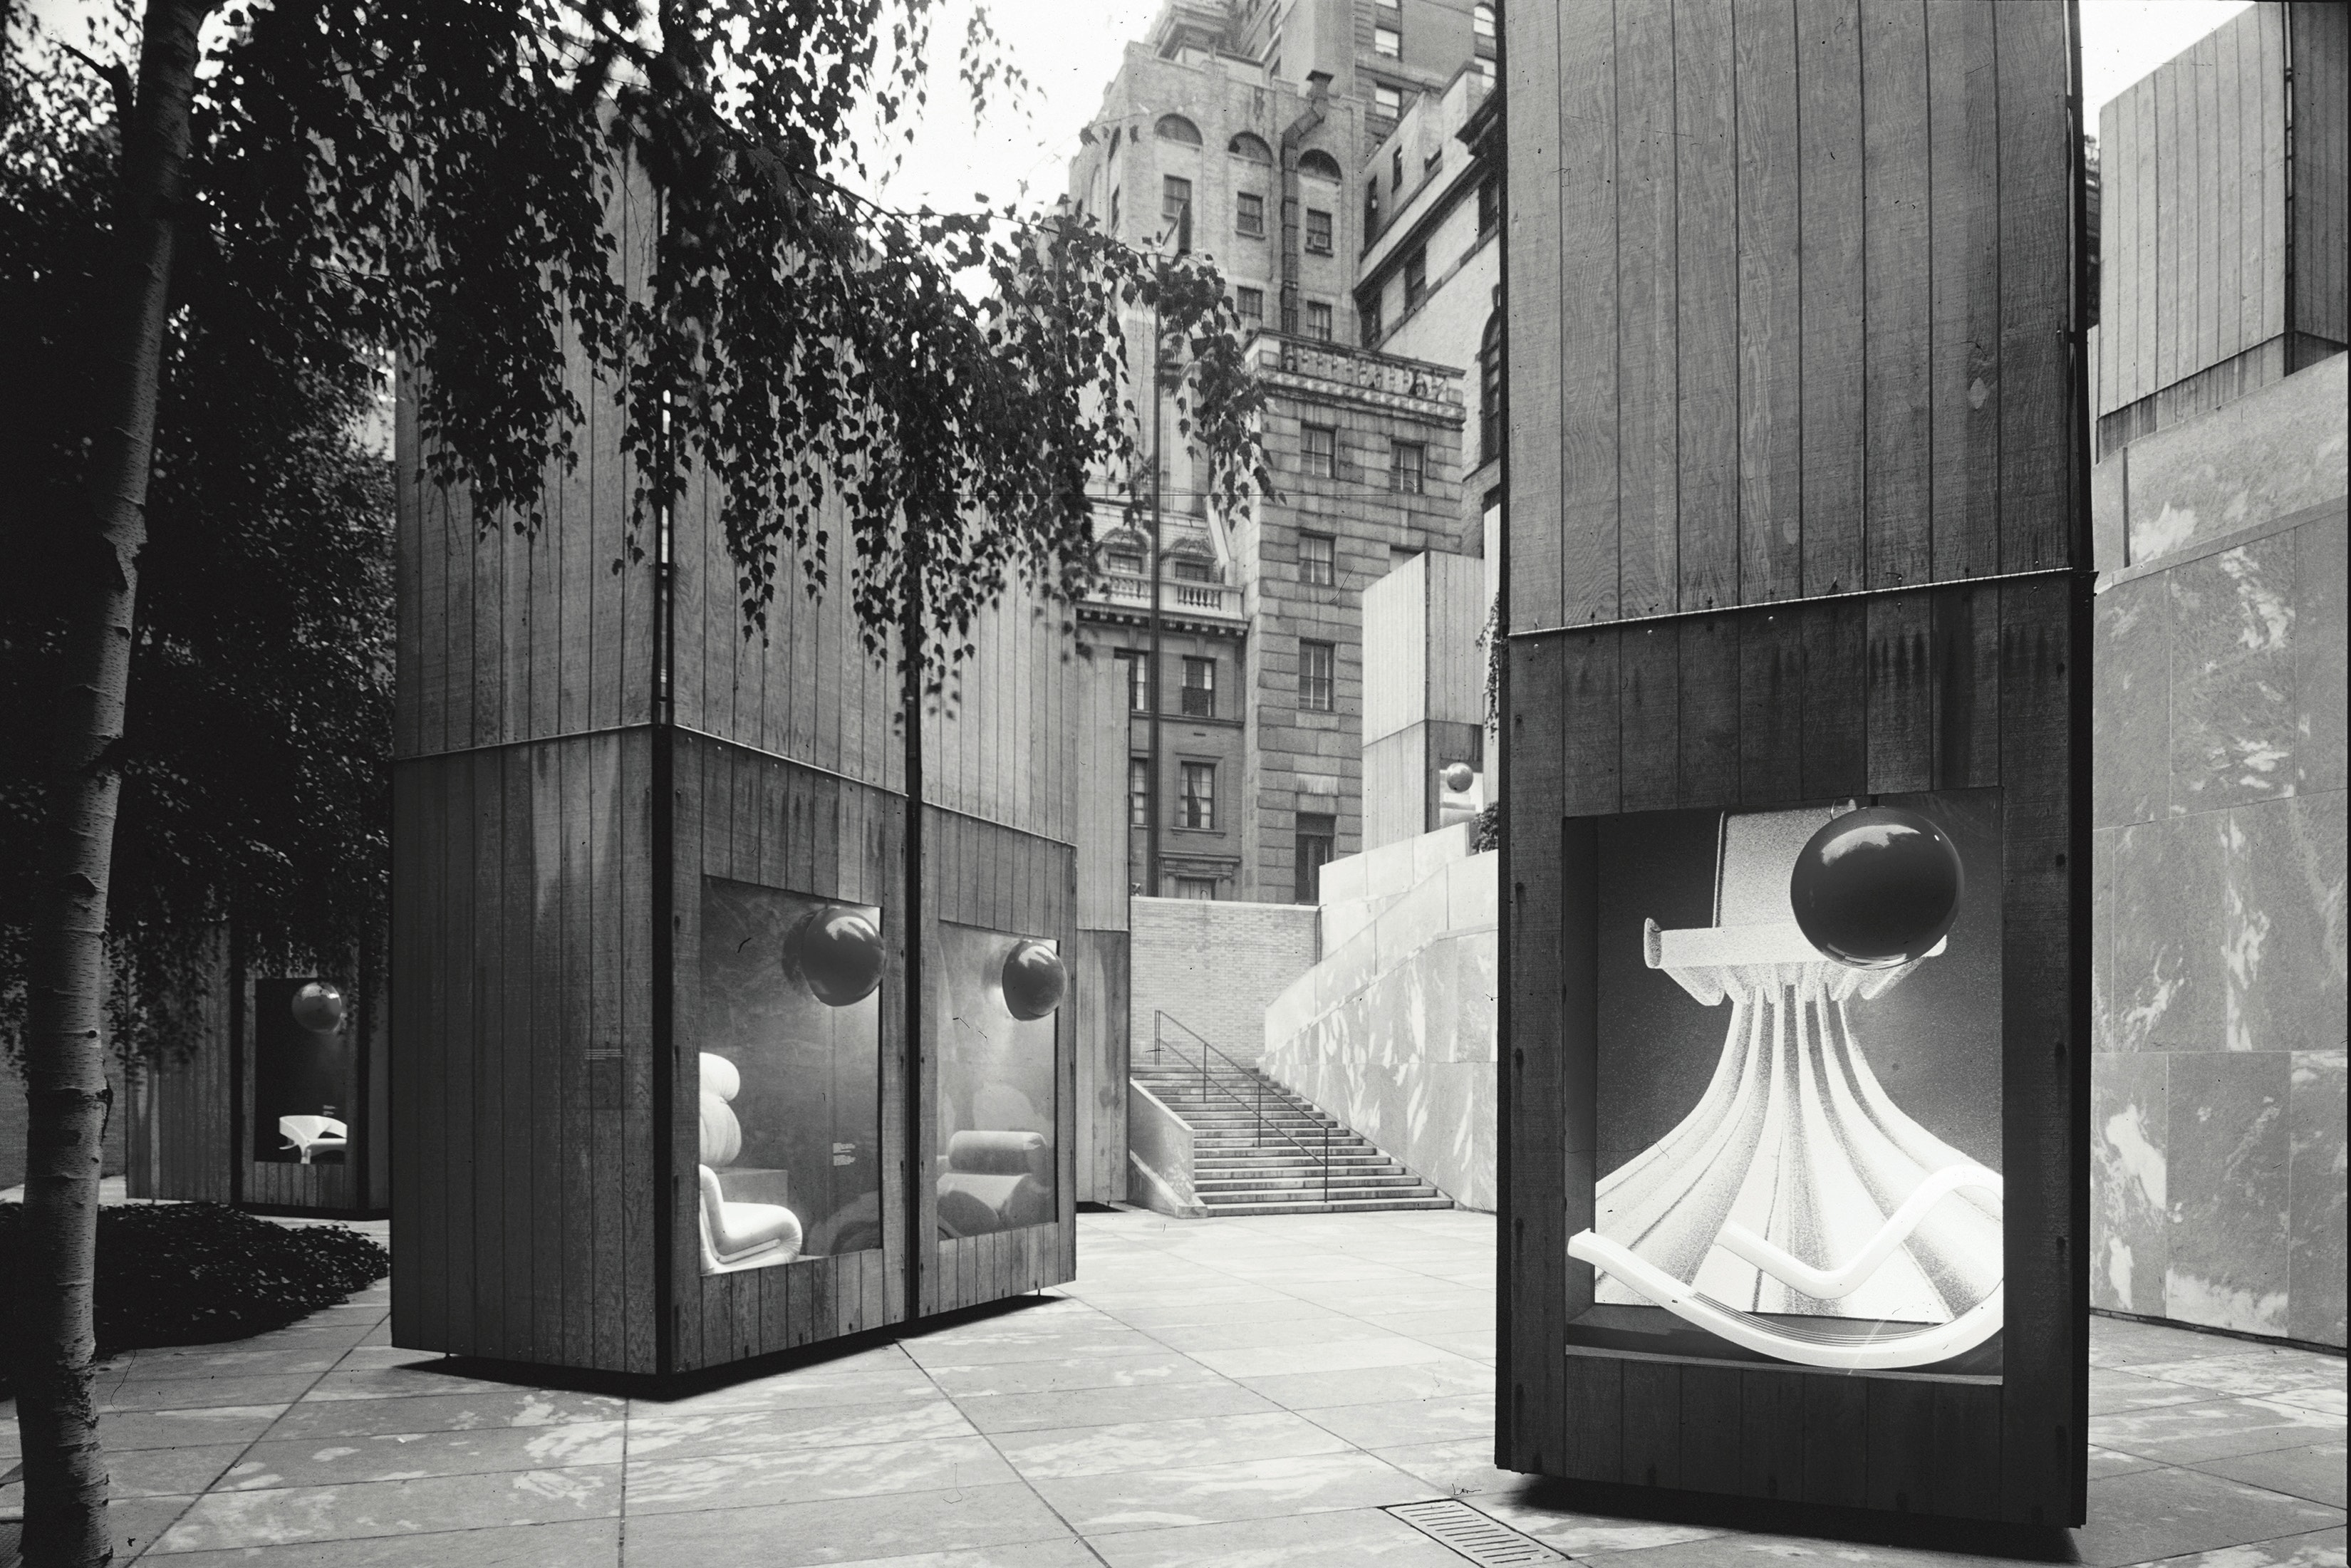 Image of objects in cases outdoors as part of exhibition display